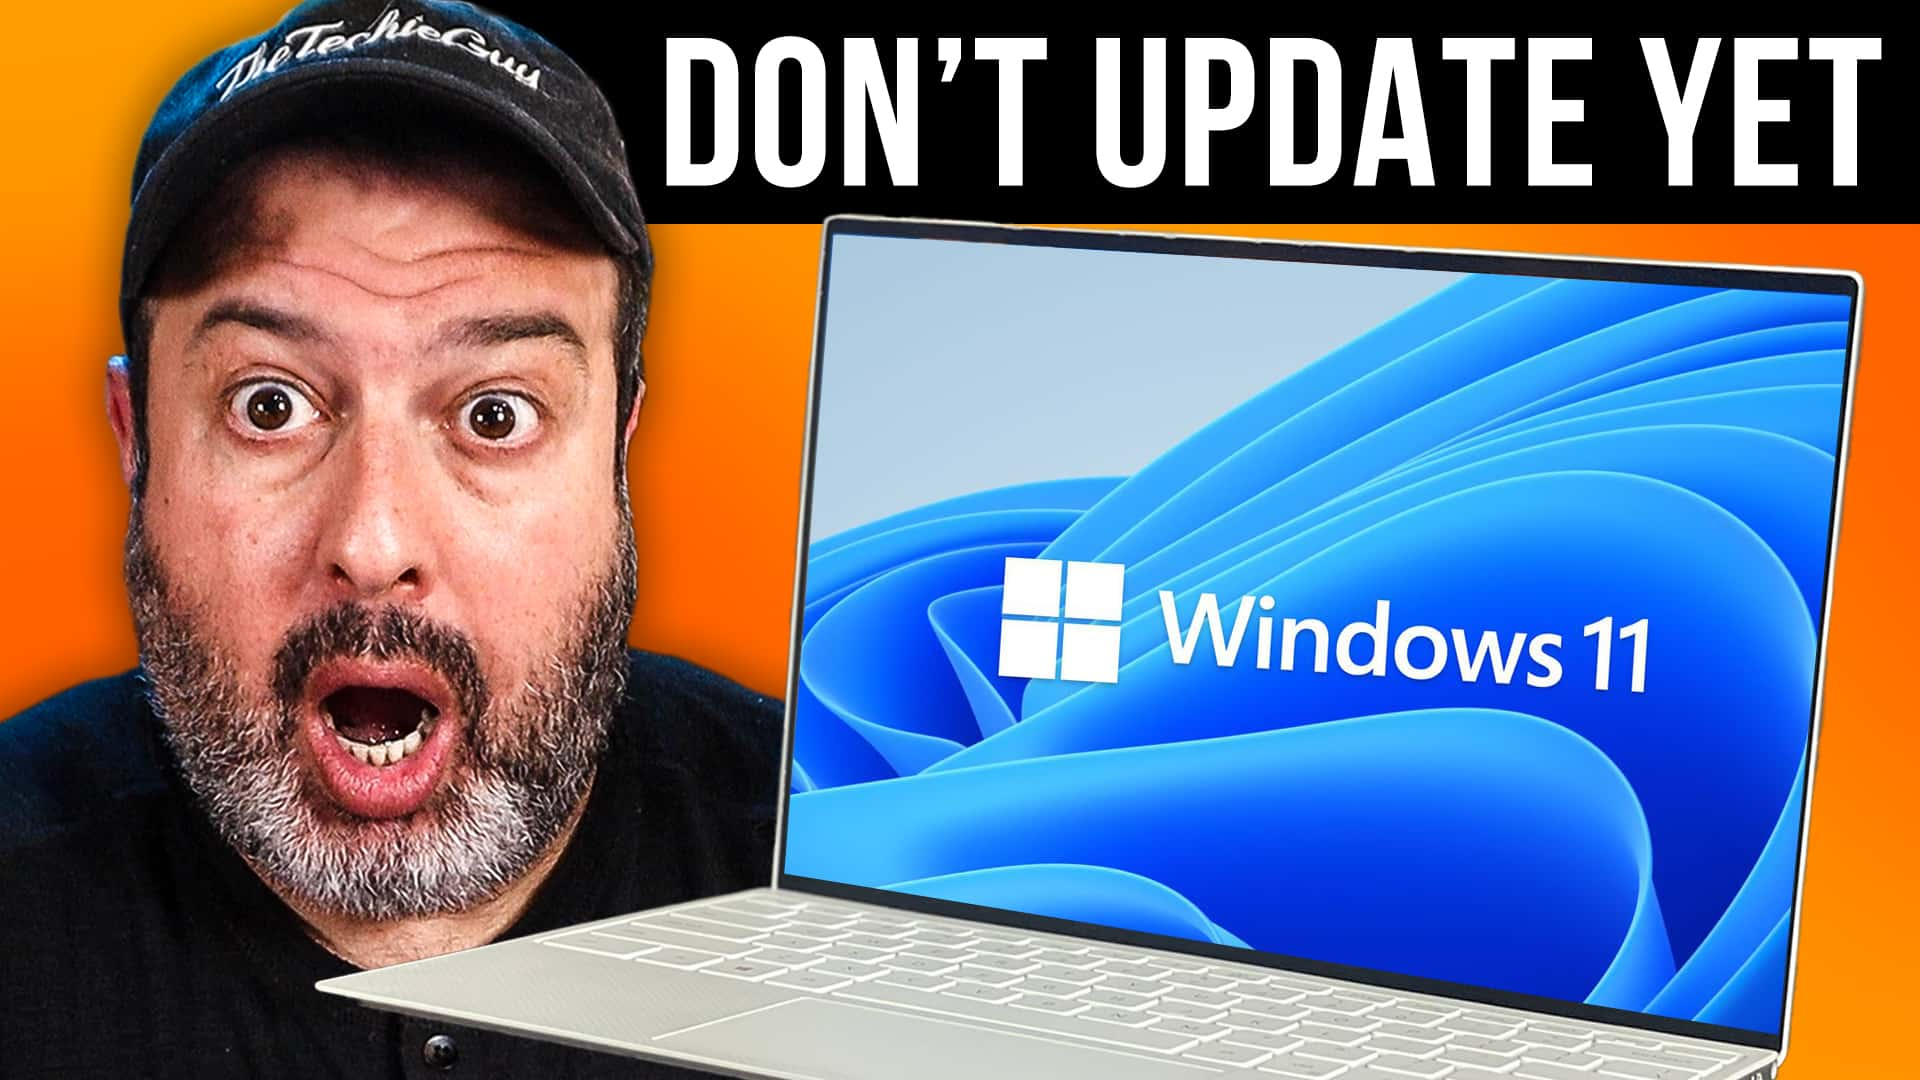 5 steps you must take BEFORE updating to Windows 11